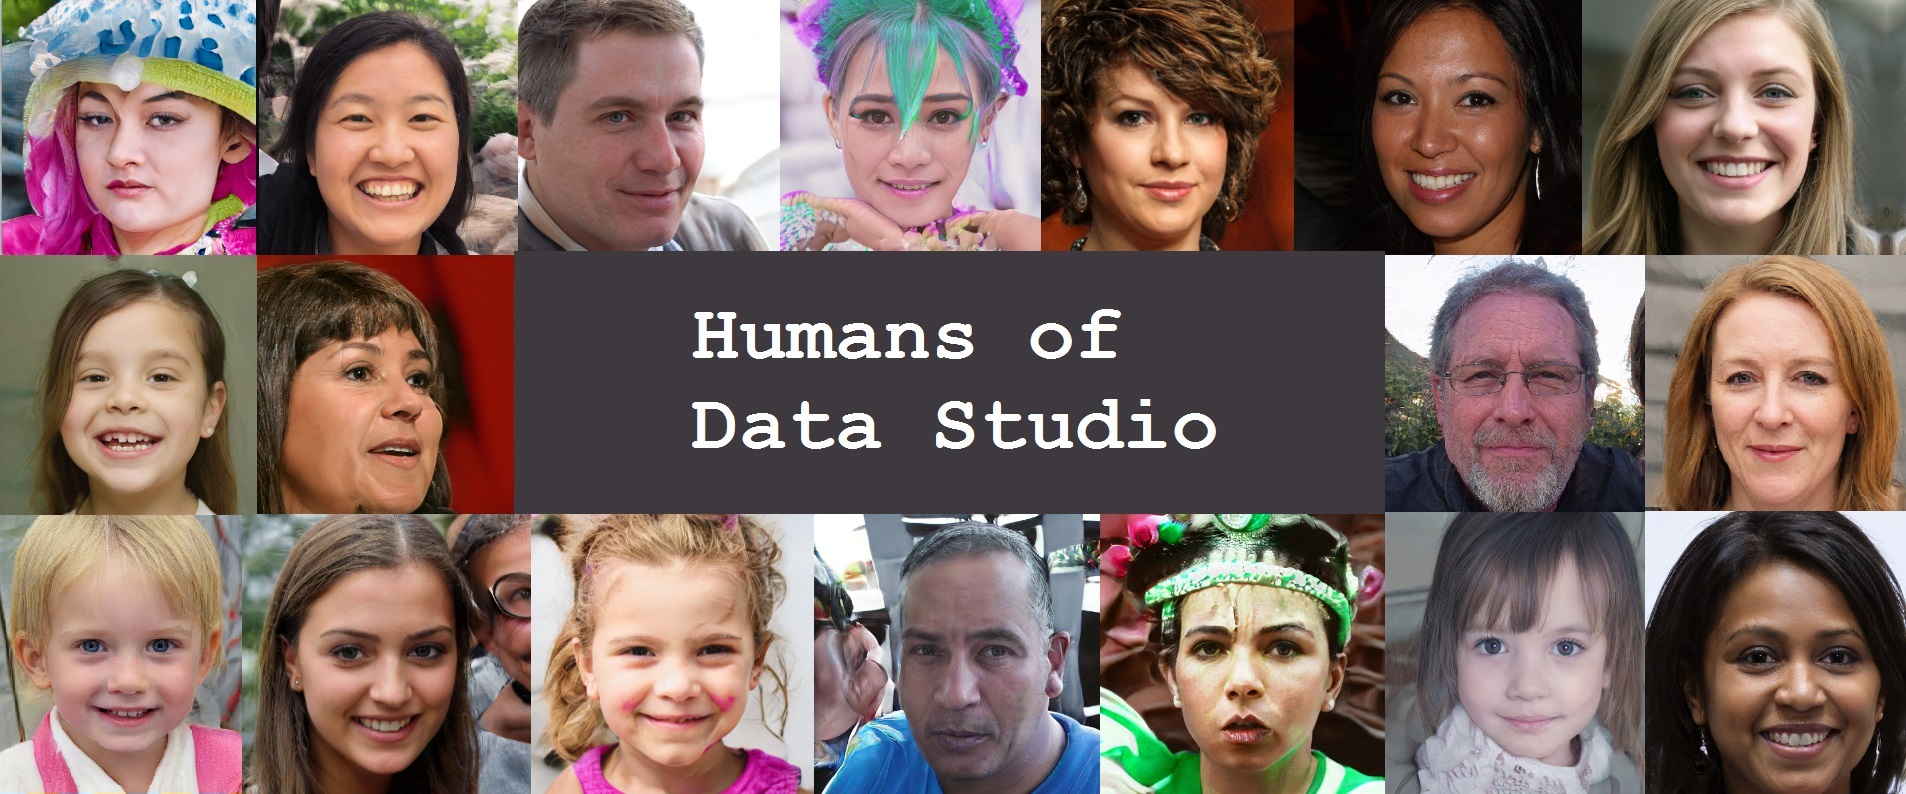 Humans of Data Studio (2)